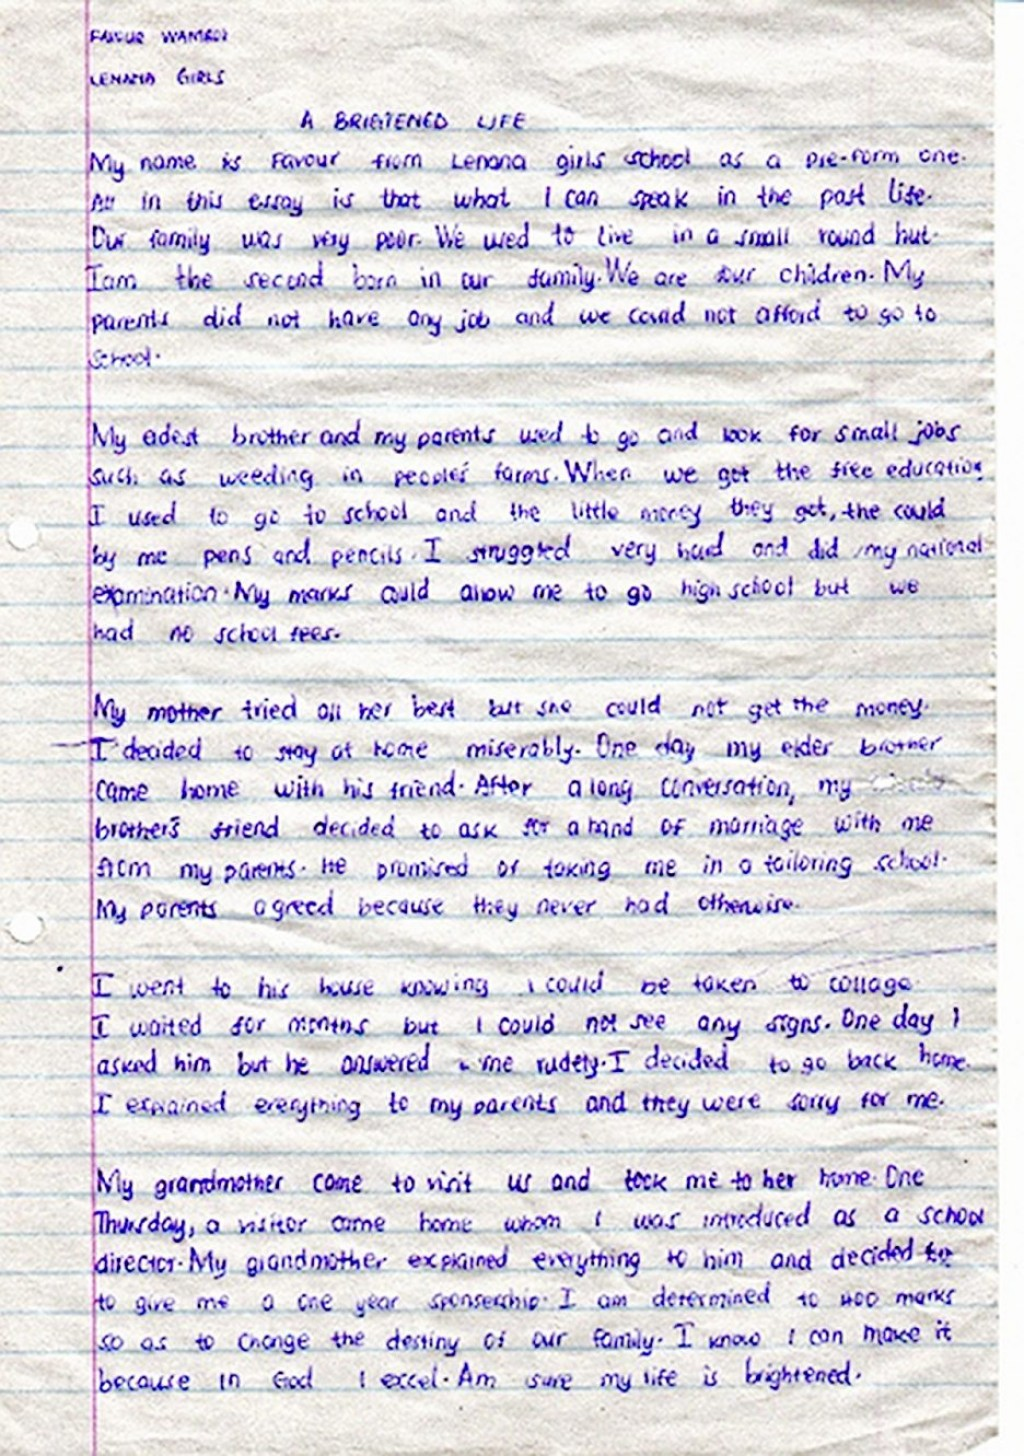 021 First Day School Essay Gxart Favour Brightened Life Alison Strong Lenana Jan My In Writing High Secondary New English Long Short Marathi Hindi Primary 936x1331 Example Stunning Name Conclusion Esperanza Large